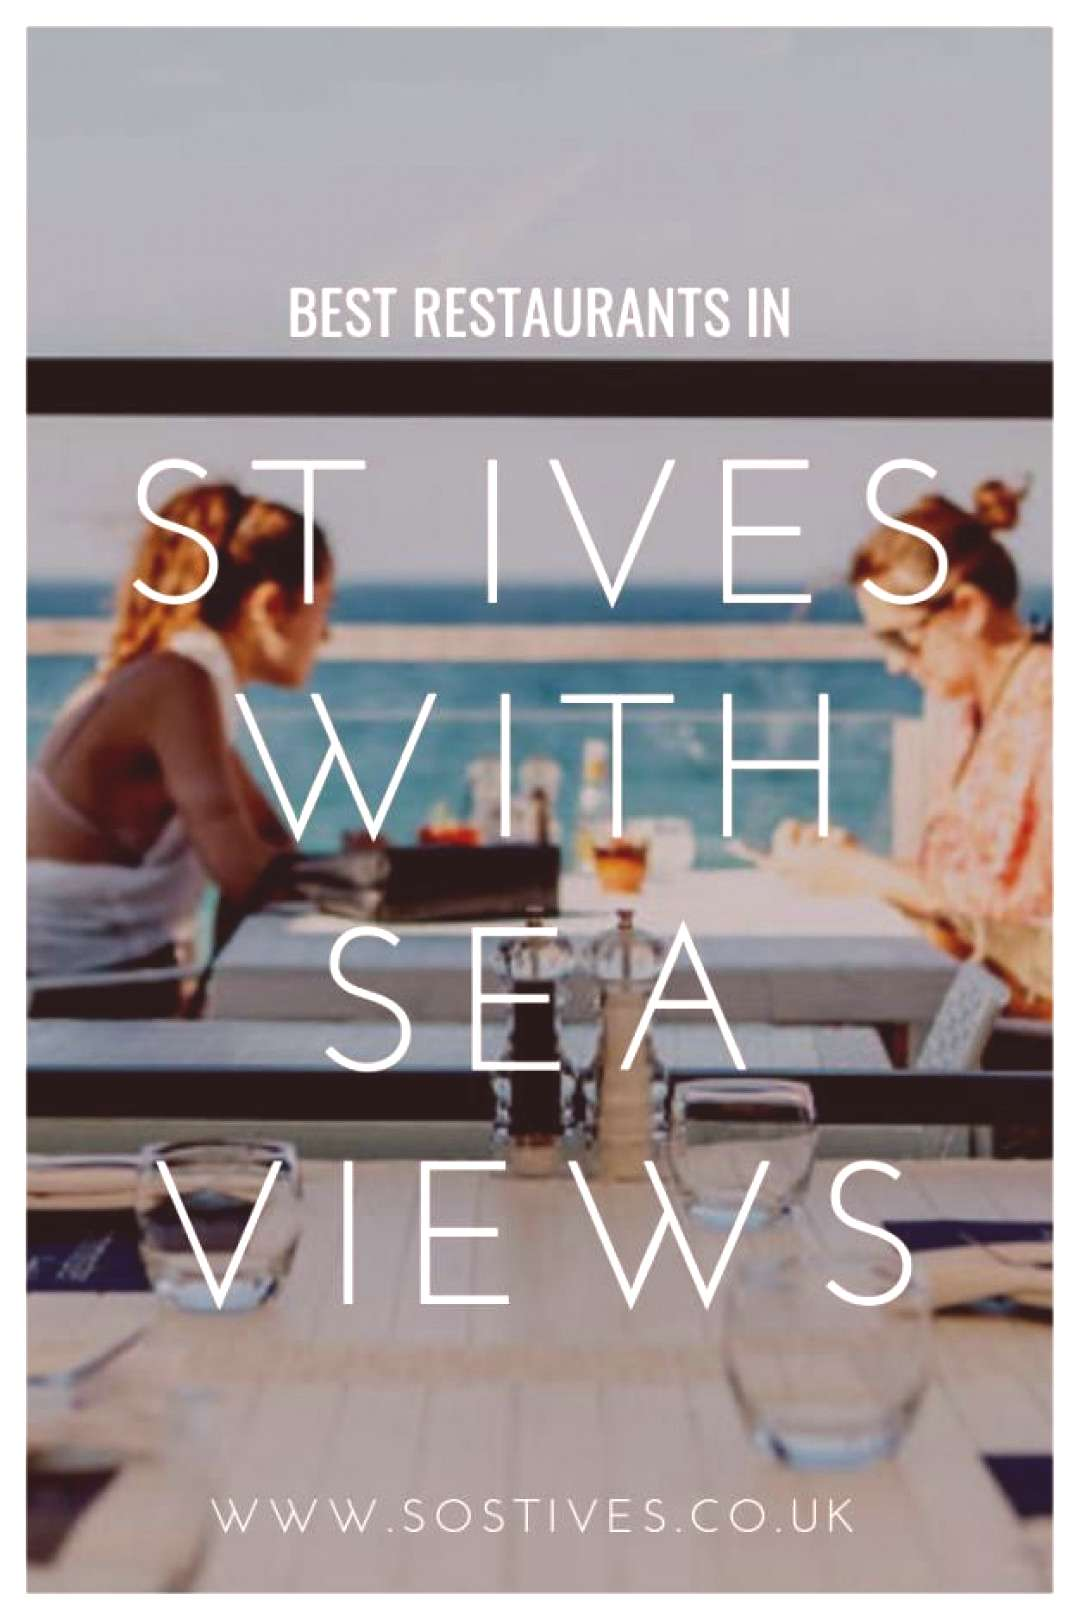 The best restaurants in St Ives with sea views delicious food with stunning views Porthminster Beac